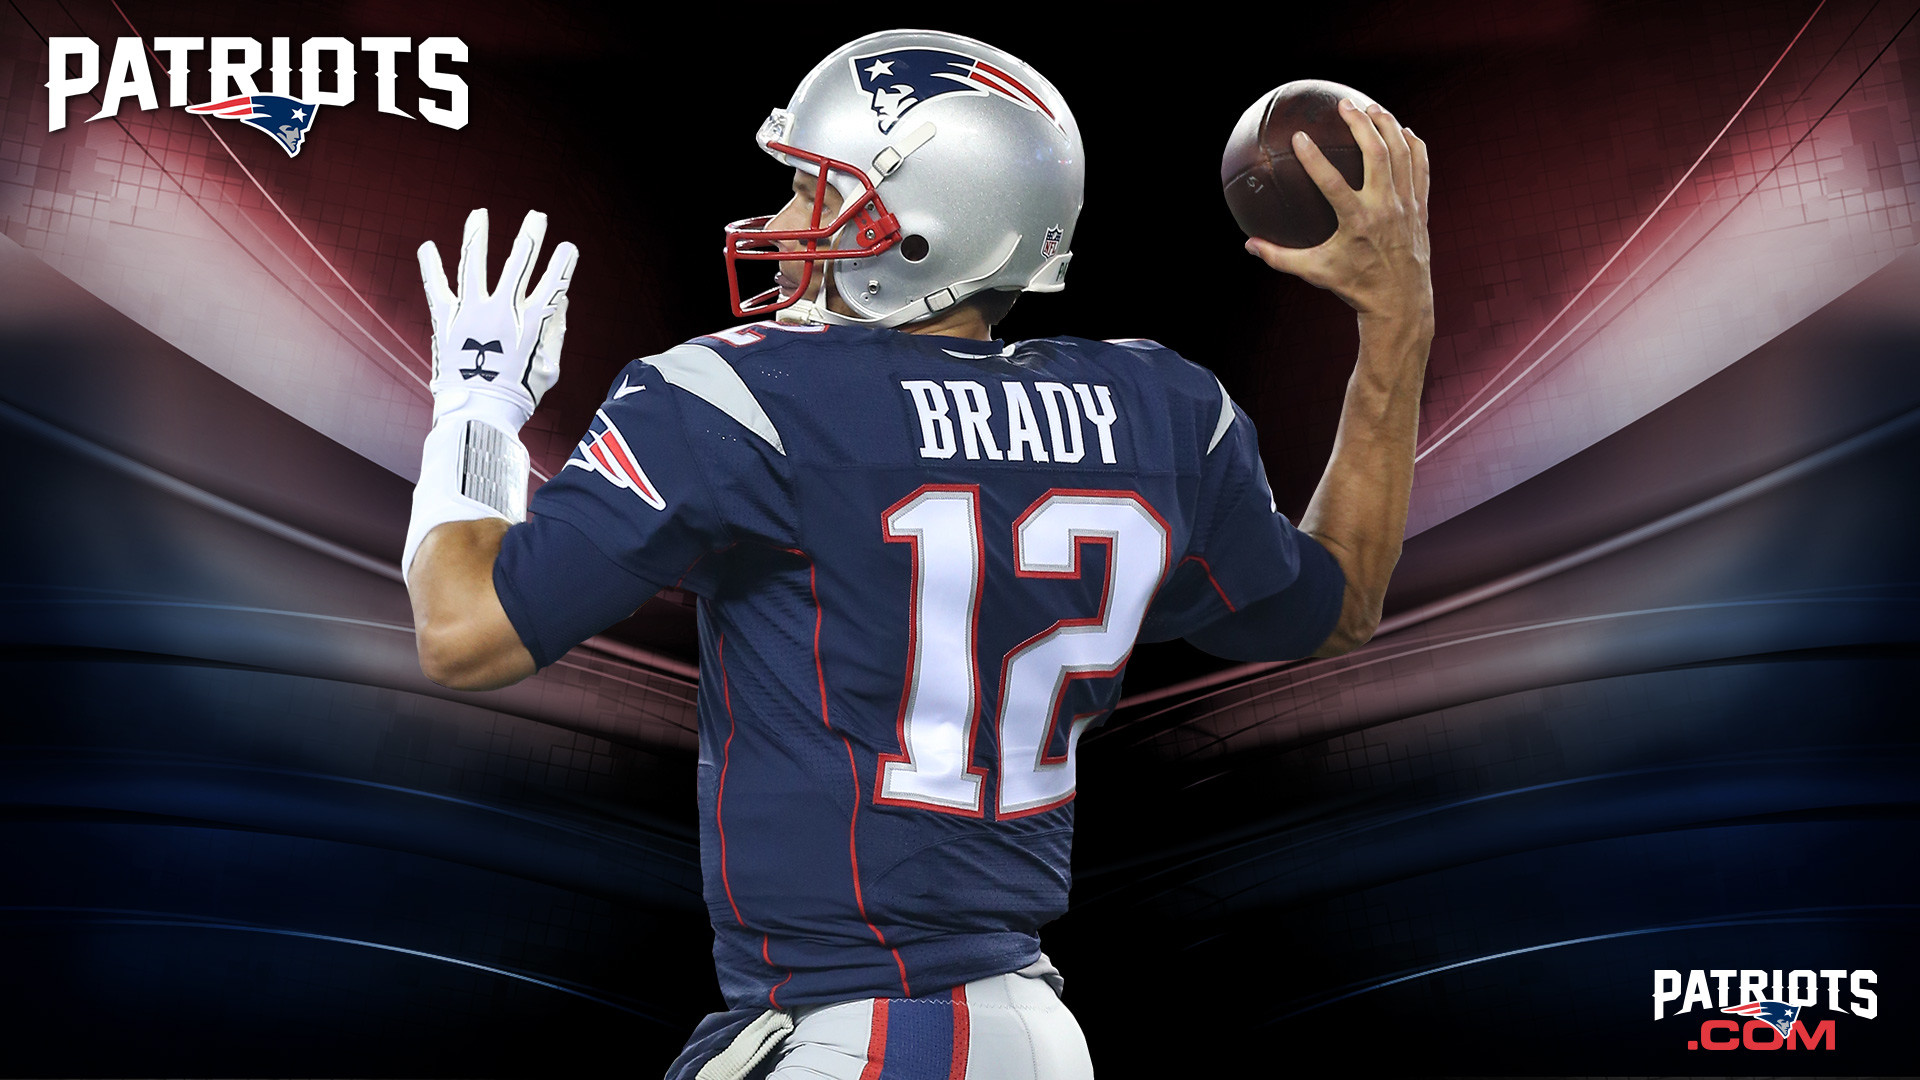 1920x1080 Download free wallpaper Patriots for mobile phone 640×960 Free Patriots  Wallpapers (34 Wallpapers · New England ...